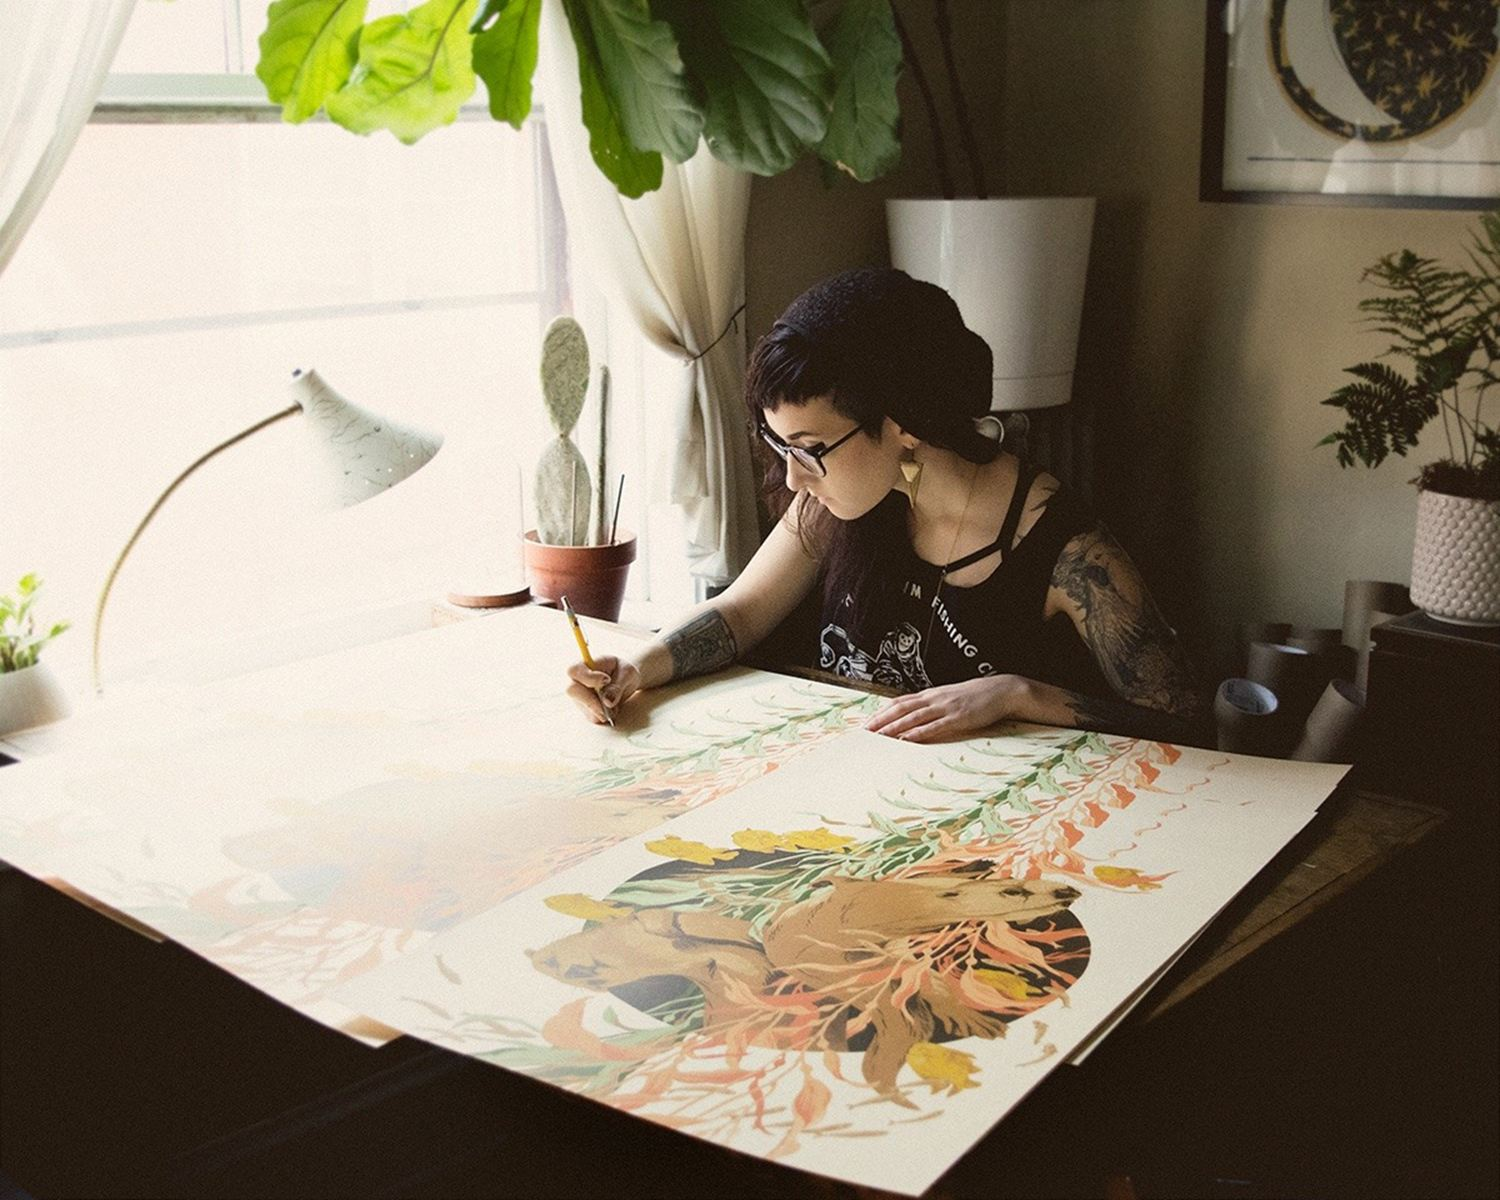 artist tegan white in studio